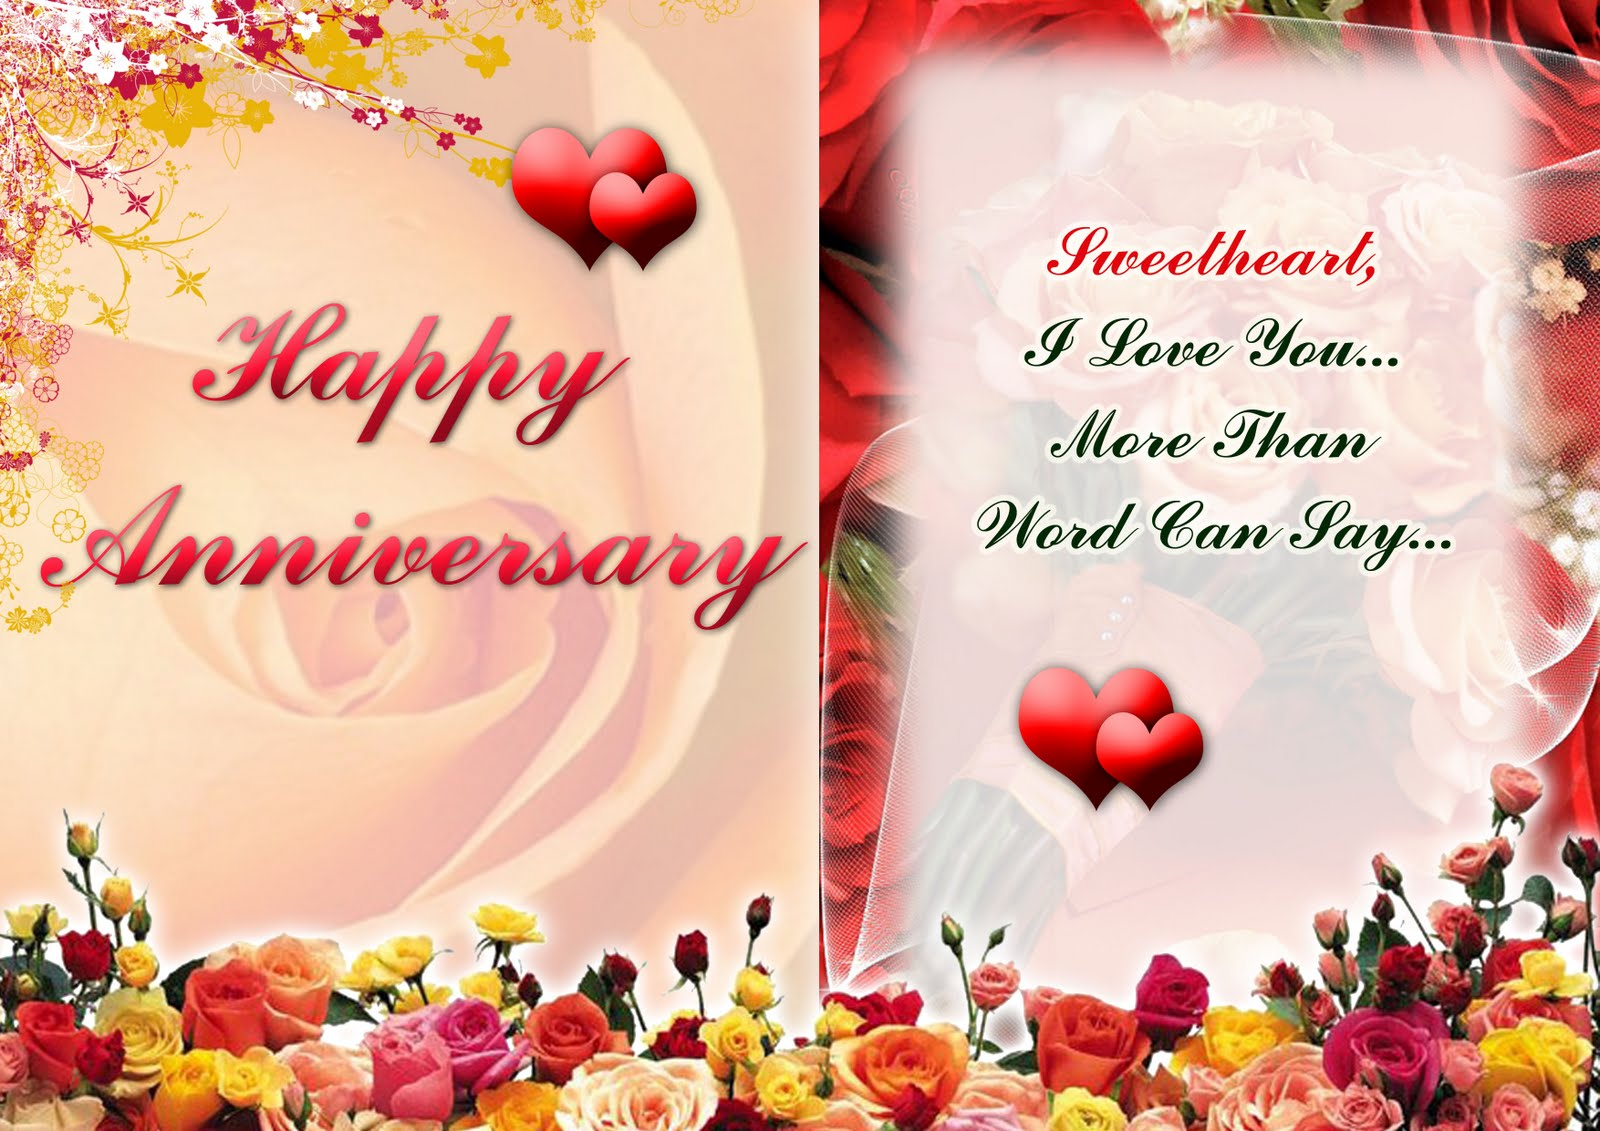 Funny Anniversary Wishes Cartoons Anniversary Images Festival Chaska